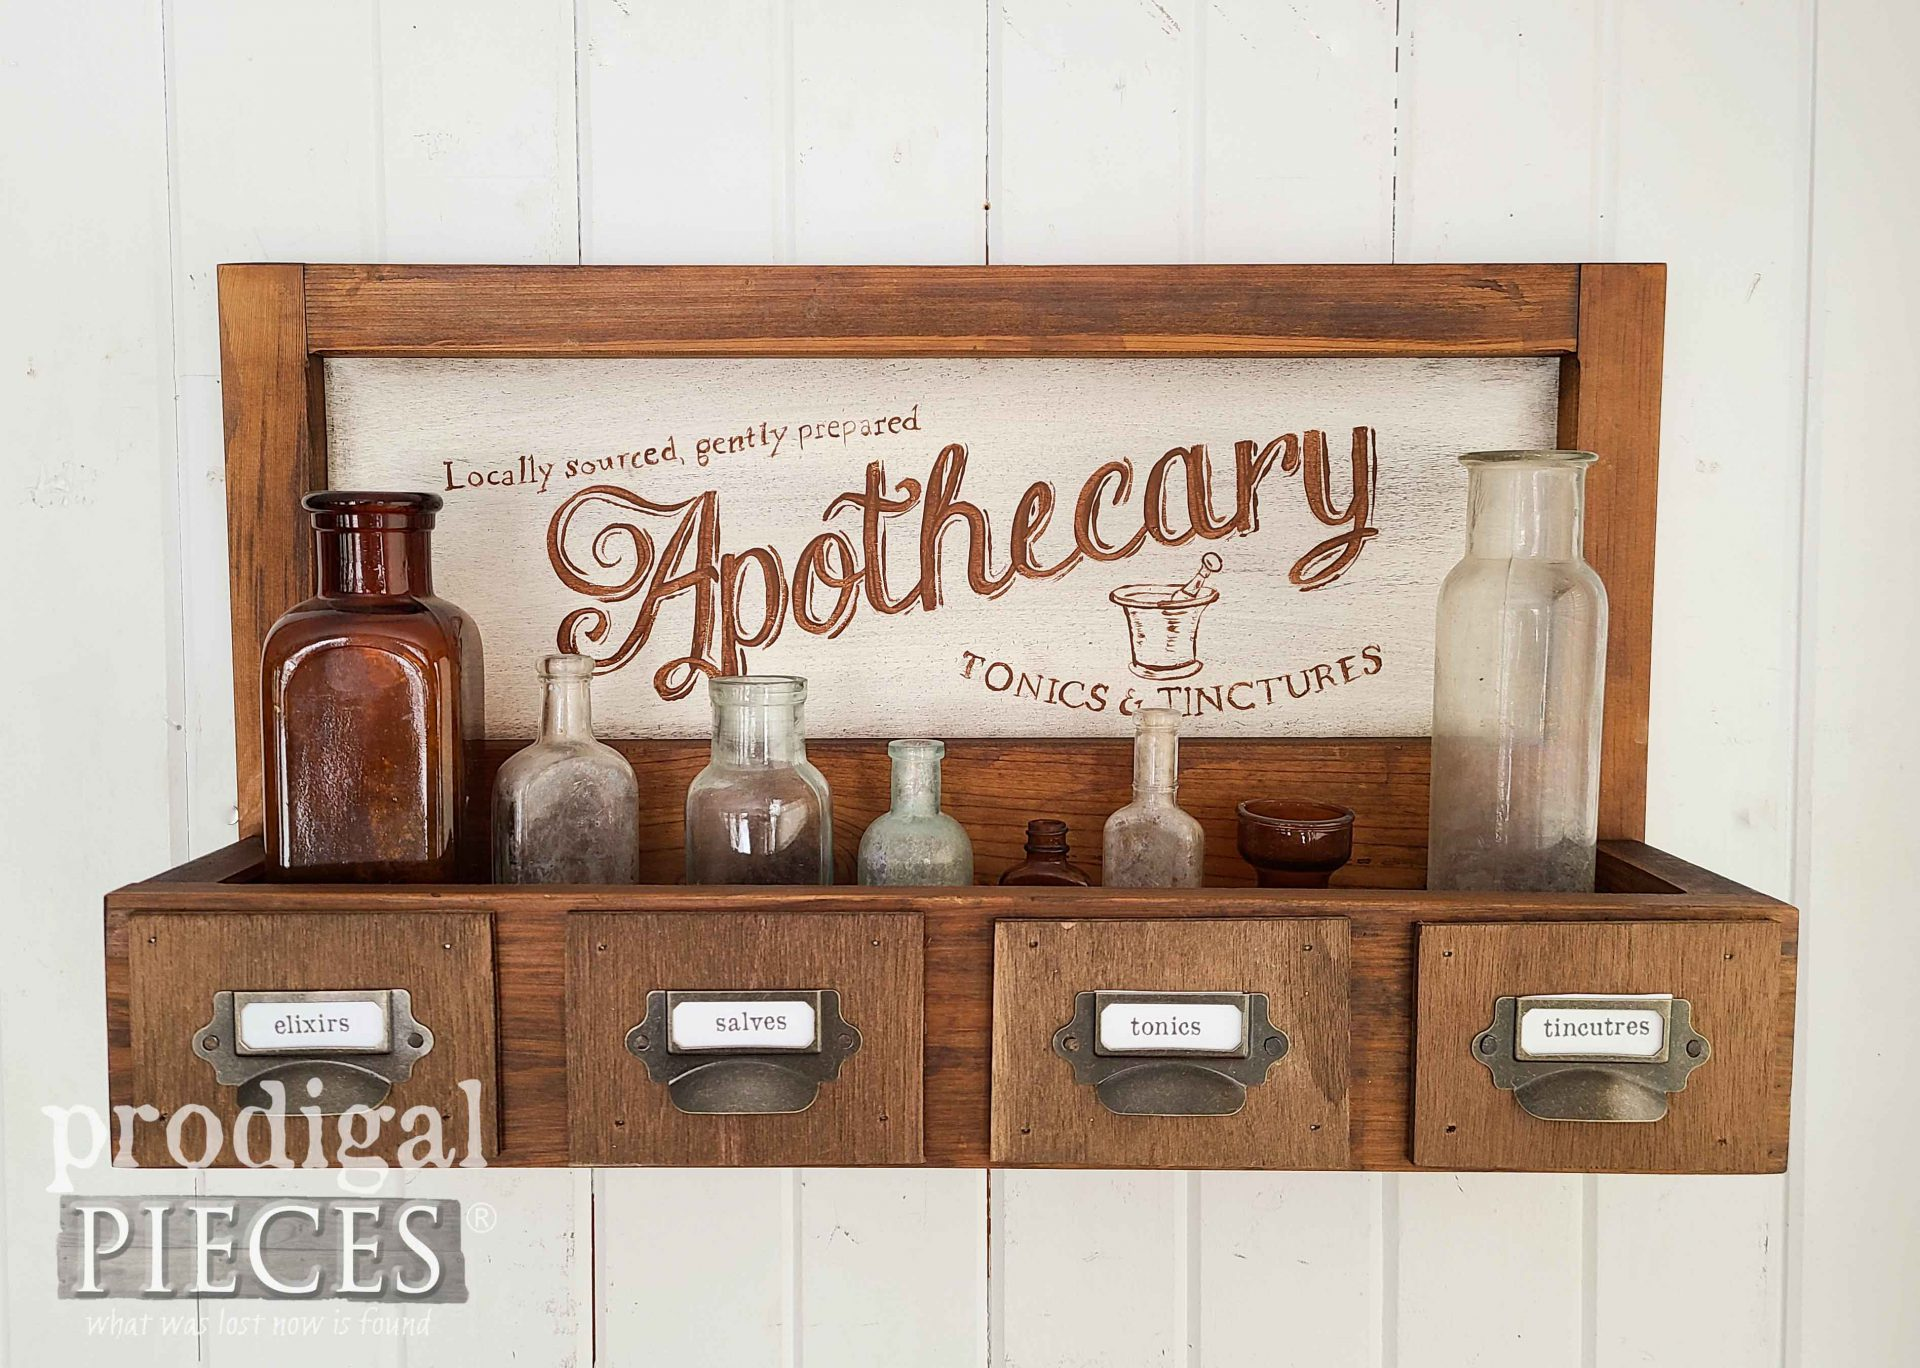 Vintage Apothecary Wall Box with Typography by Larissa of Prodigal Pieces | prodigalpieces.com #prodigalpieces #diy #farmhouse #apothecary #home